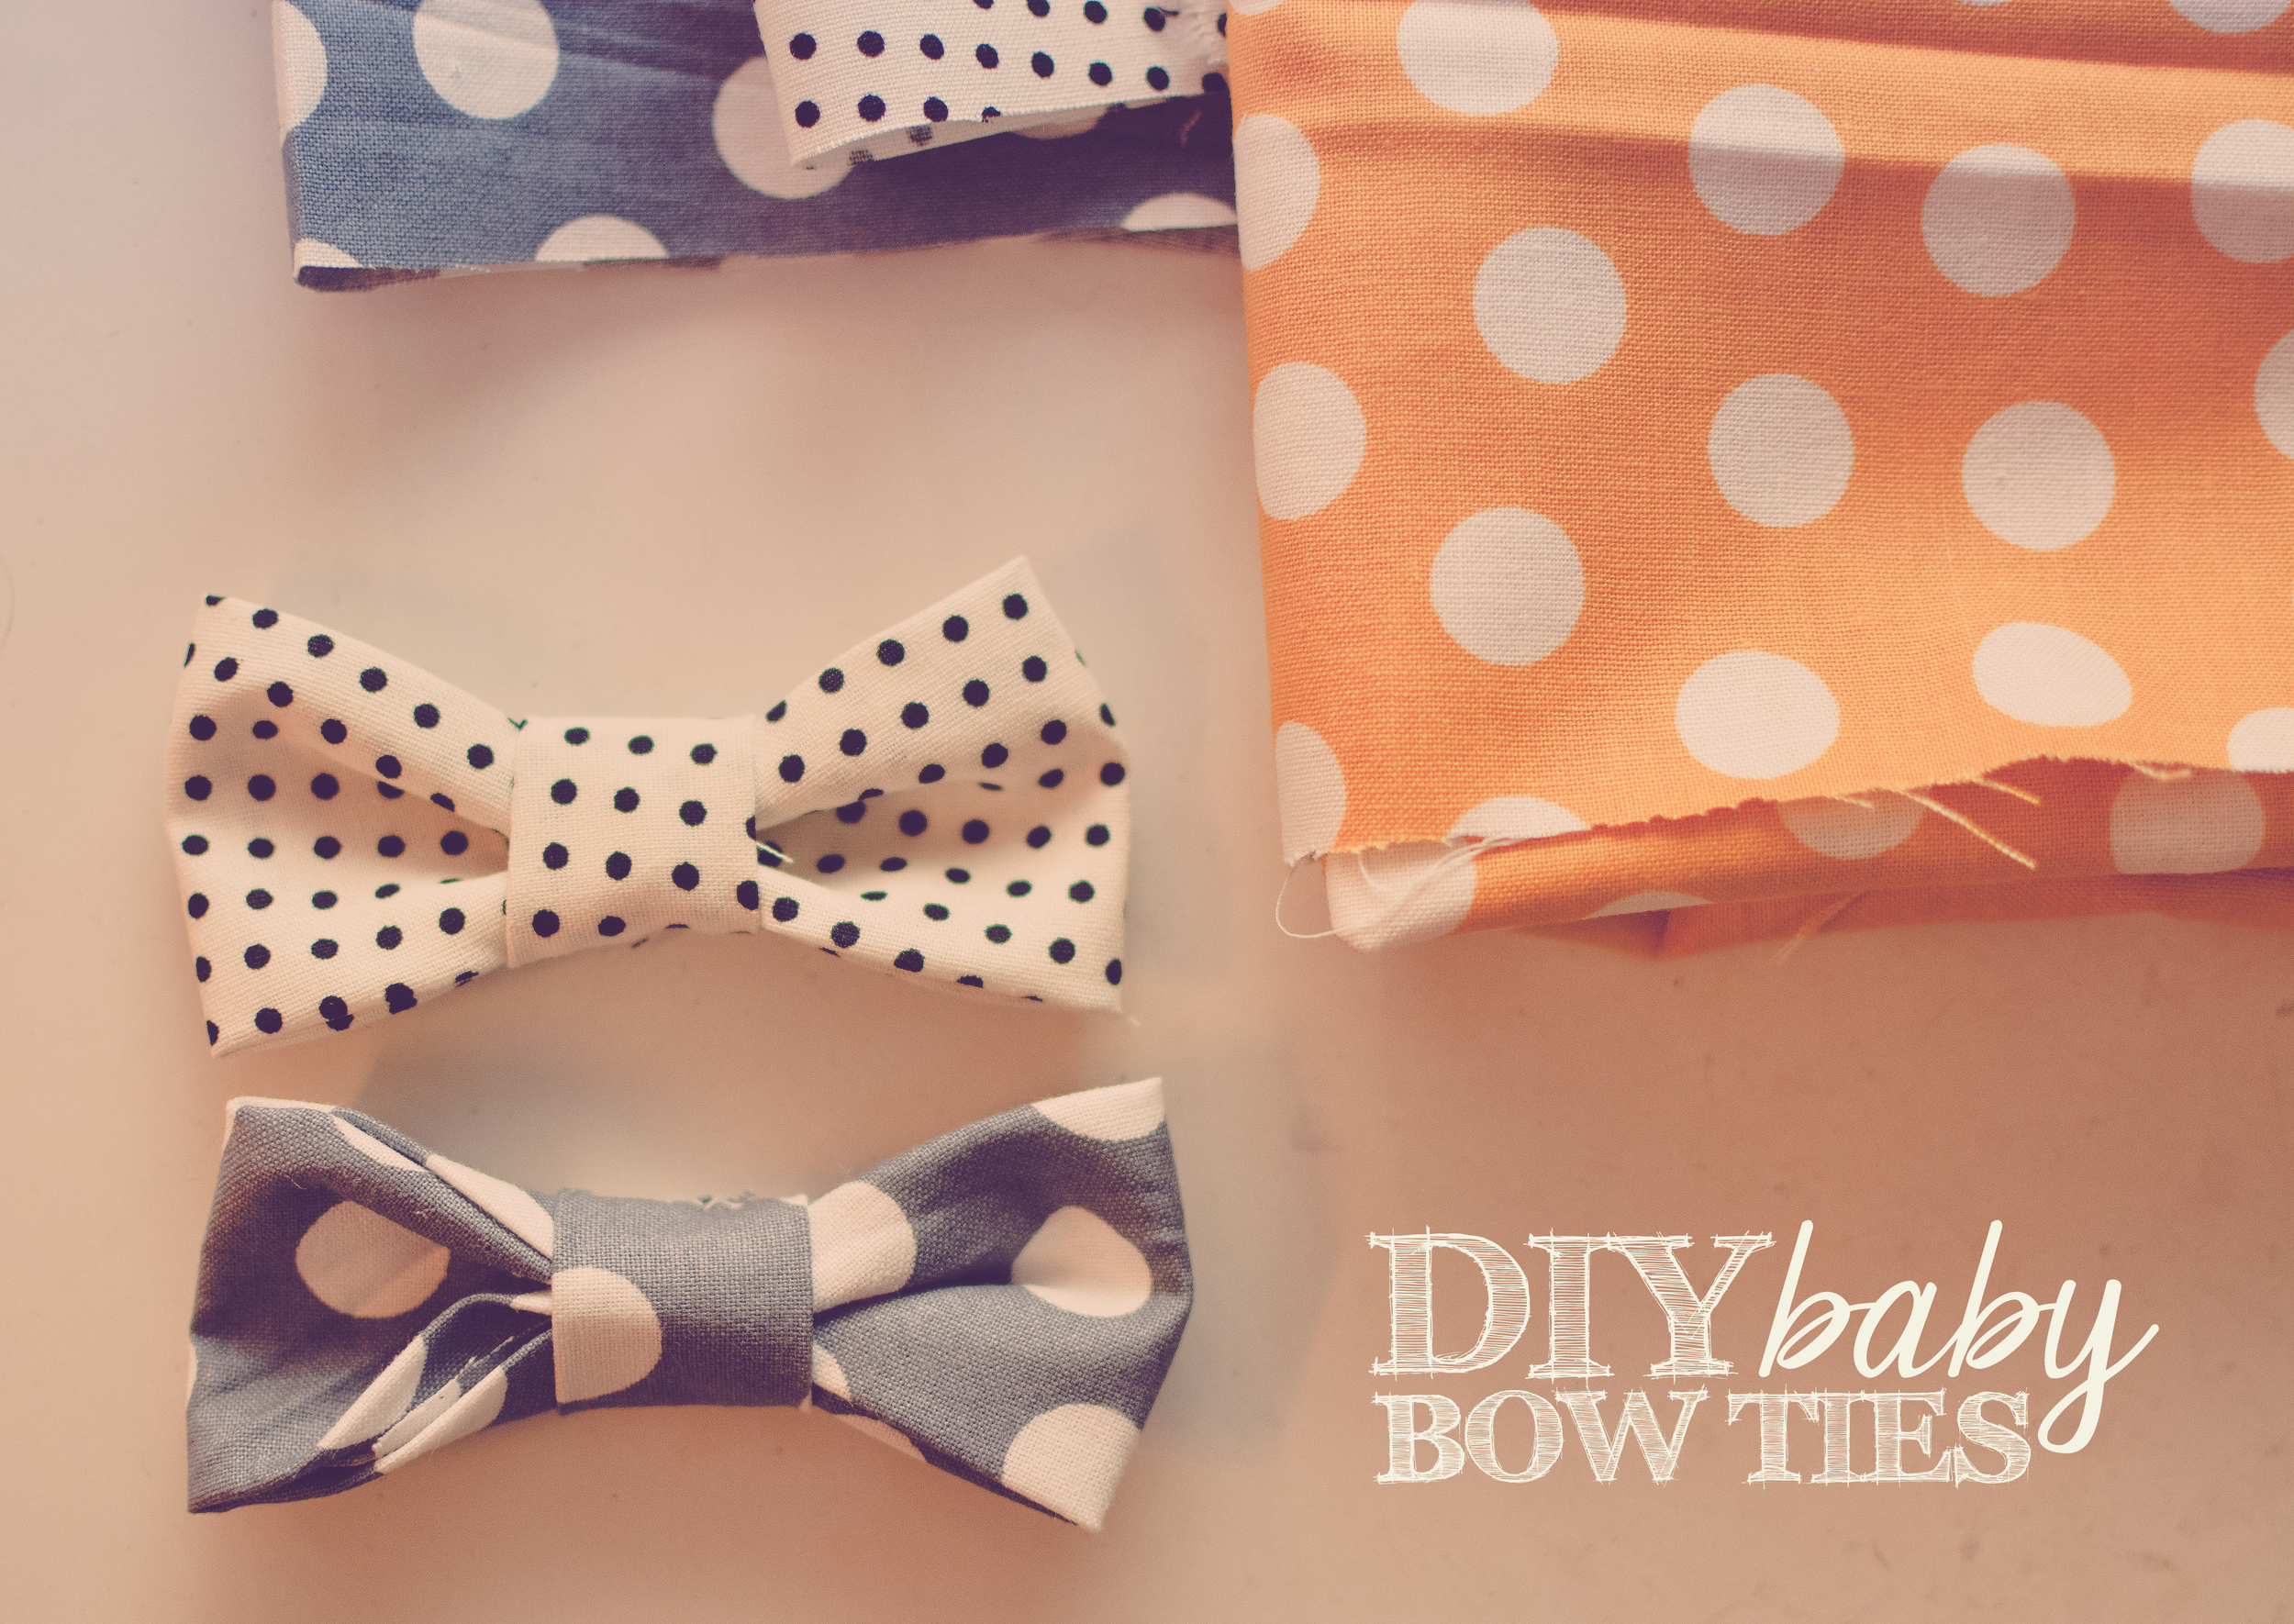 I have some newborn sessions coming up, and I thought it would be fun to make some little bow ties for the boys! These were super easy, so I thought I'd post a tutorial. I made these with boys in mind, but you could also attach them to headbands or hair clips for girls.